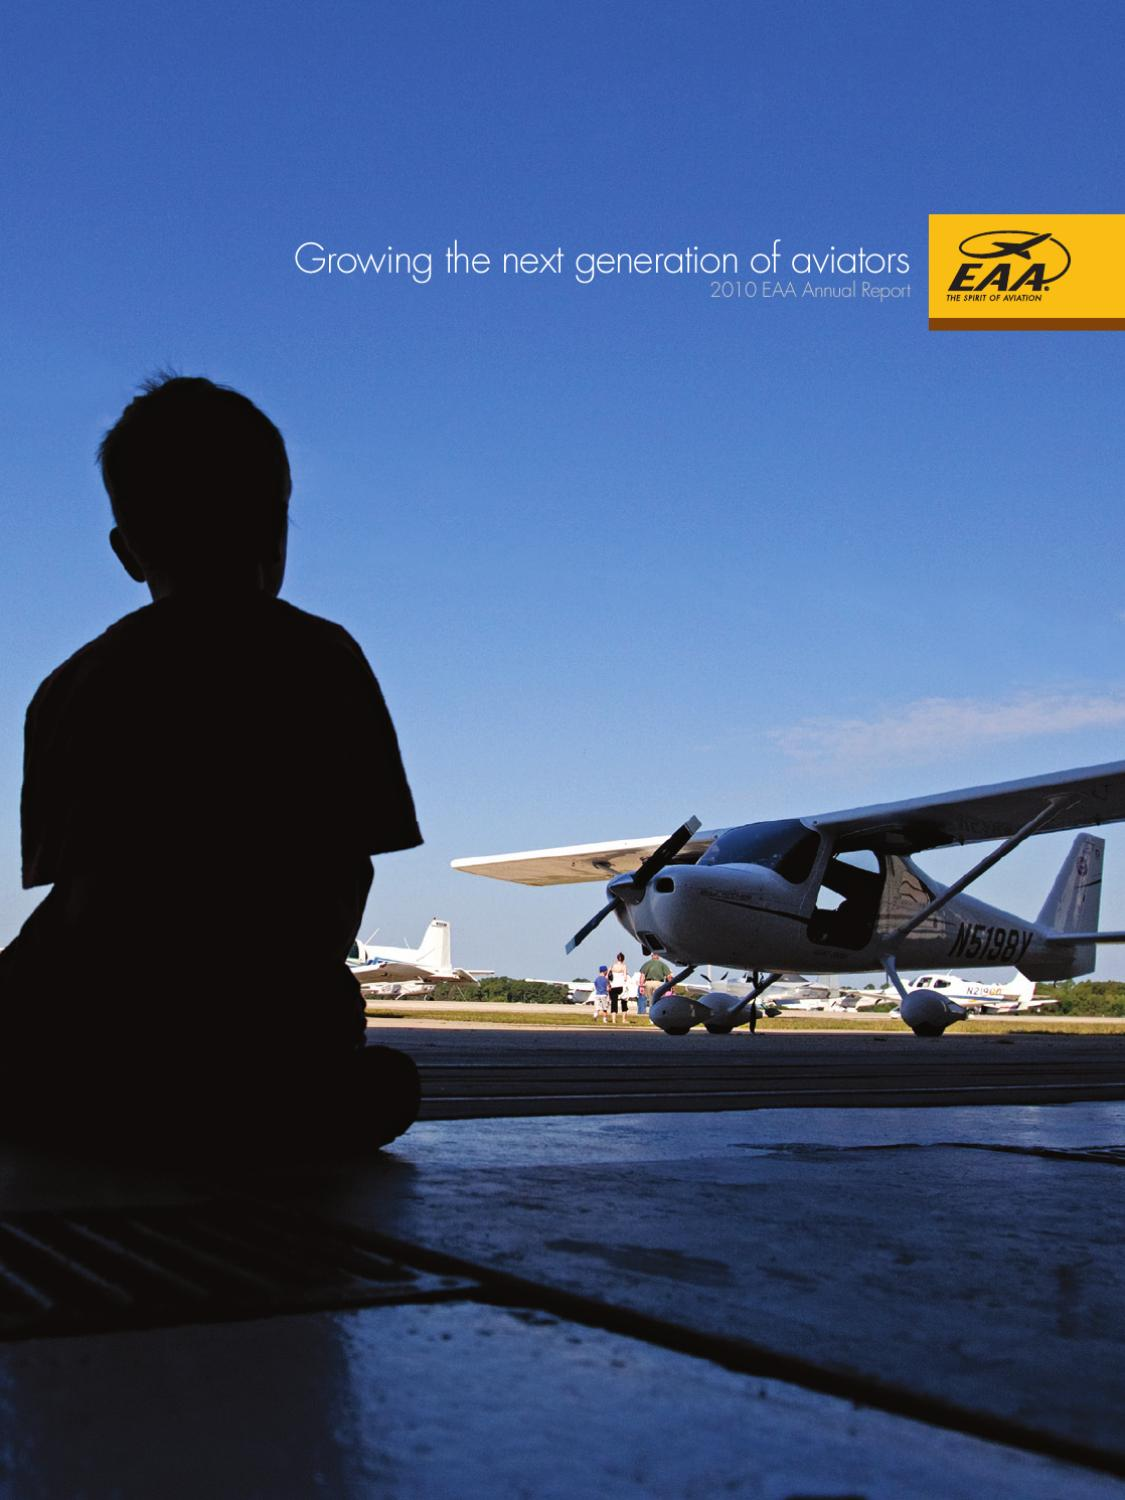 EAA Annual Report 2010